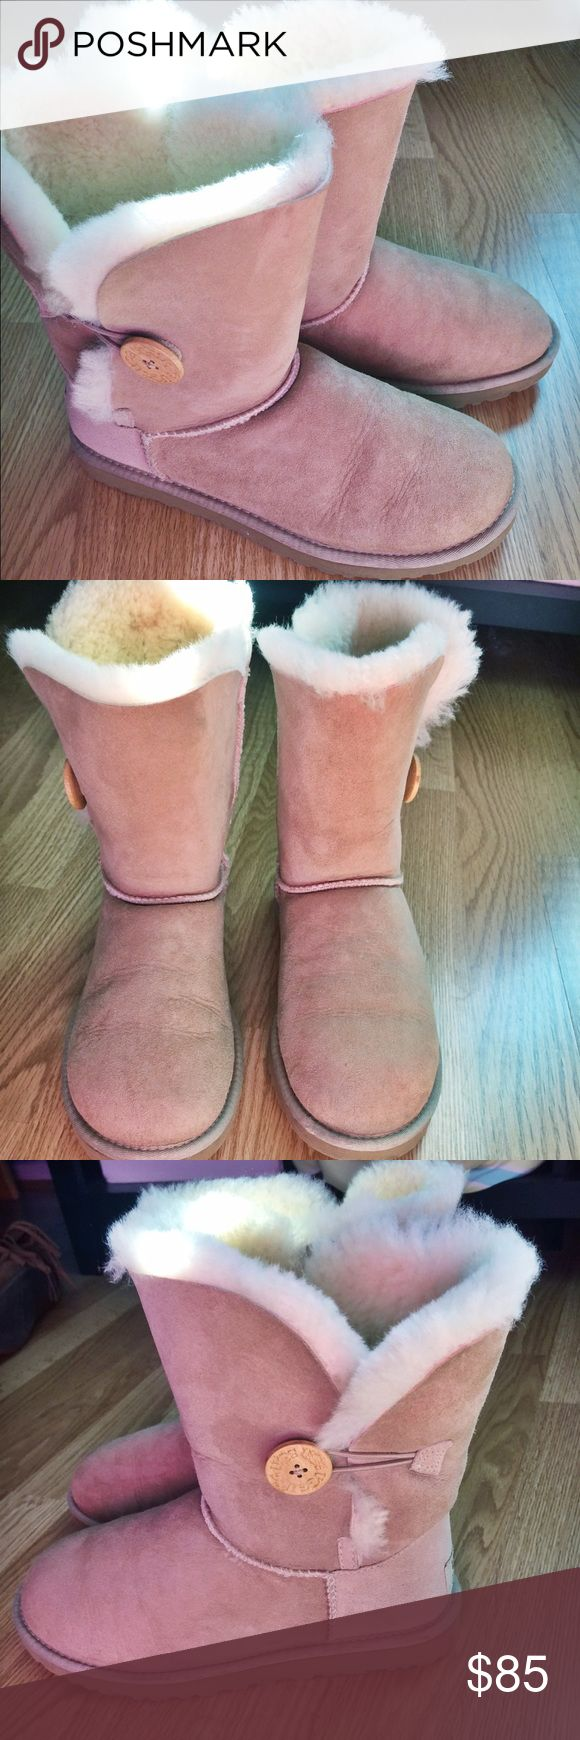 Bailey Button Uggs Light tan, sandy, bailey button uggs. Super gently used. Only worn a few times in very good condition, like brand new. Authentic Uggs brand UGG Shoes